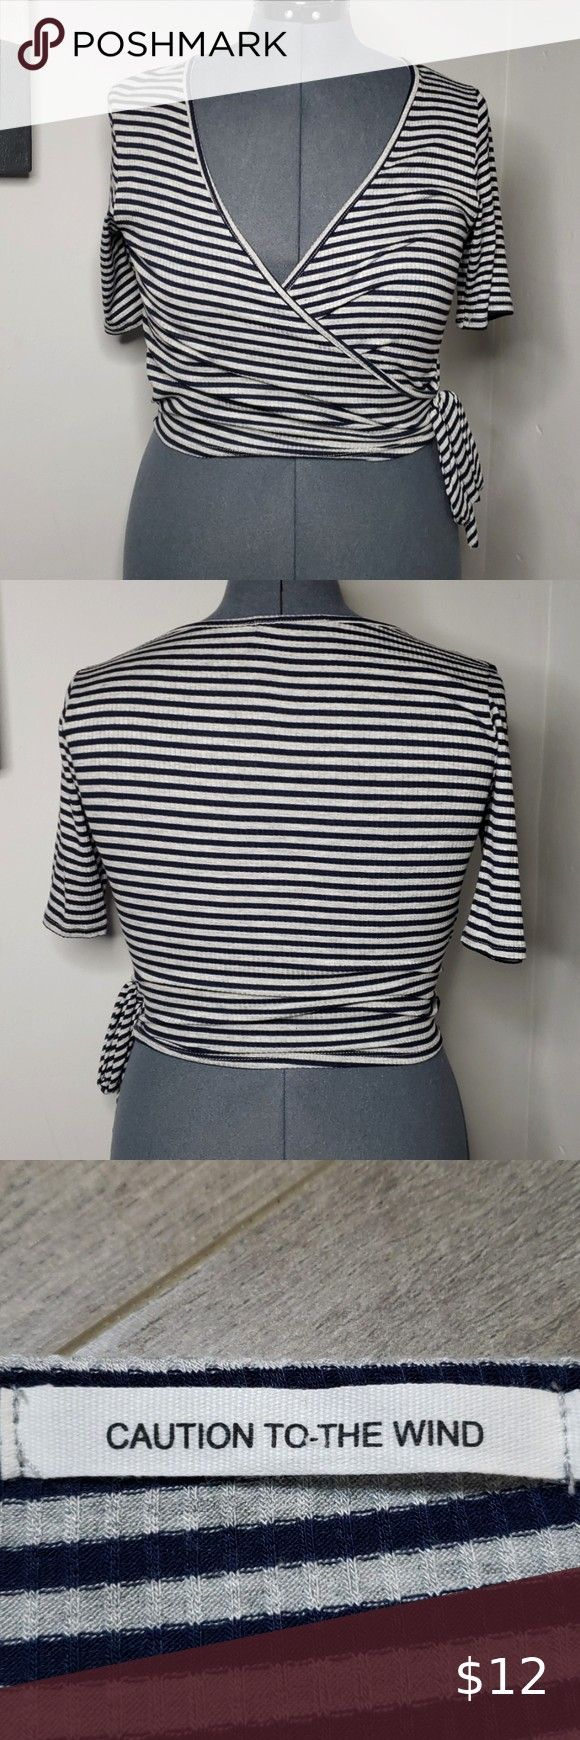 just added this listing on Poshmark Caution to the Wind Crop Top  Large To The WindI just added this listing on Poshmark Caution to the Wind Crop Top  Large To The Wind C...